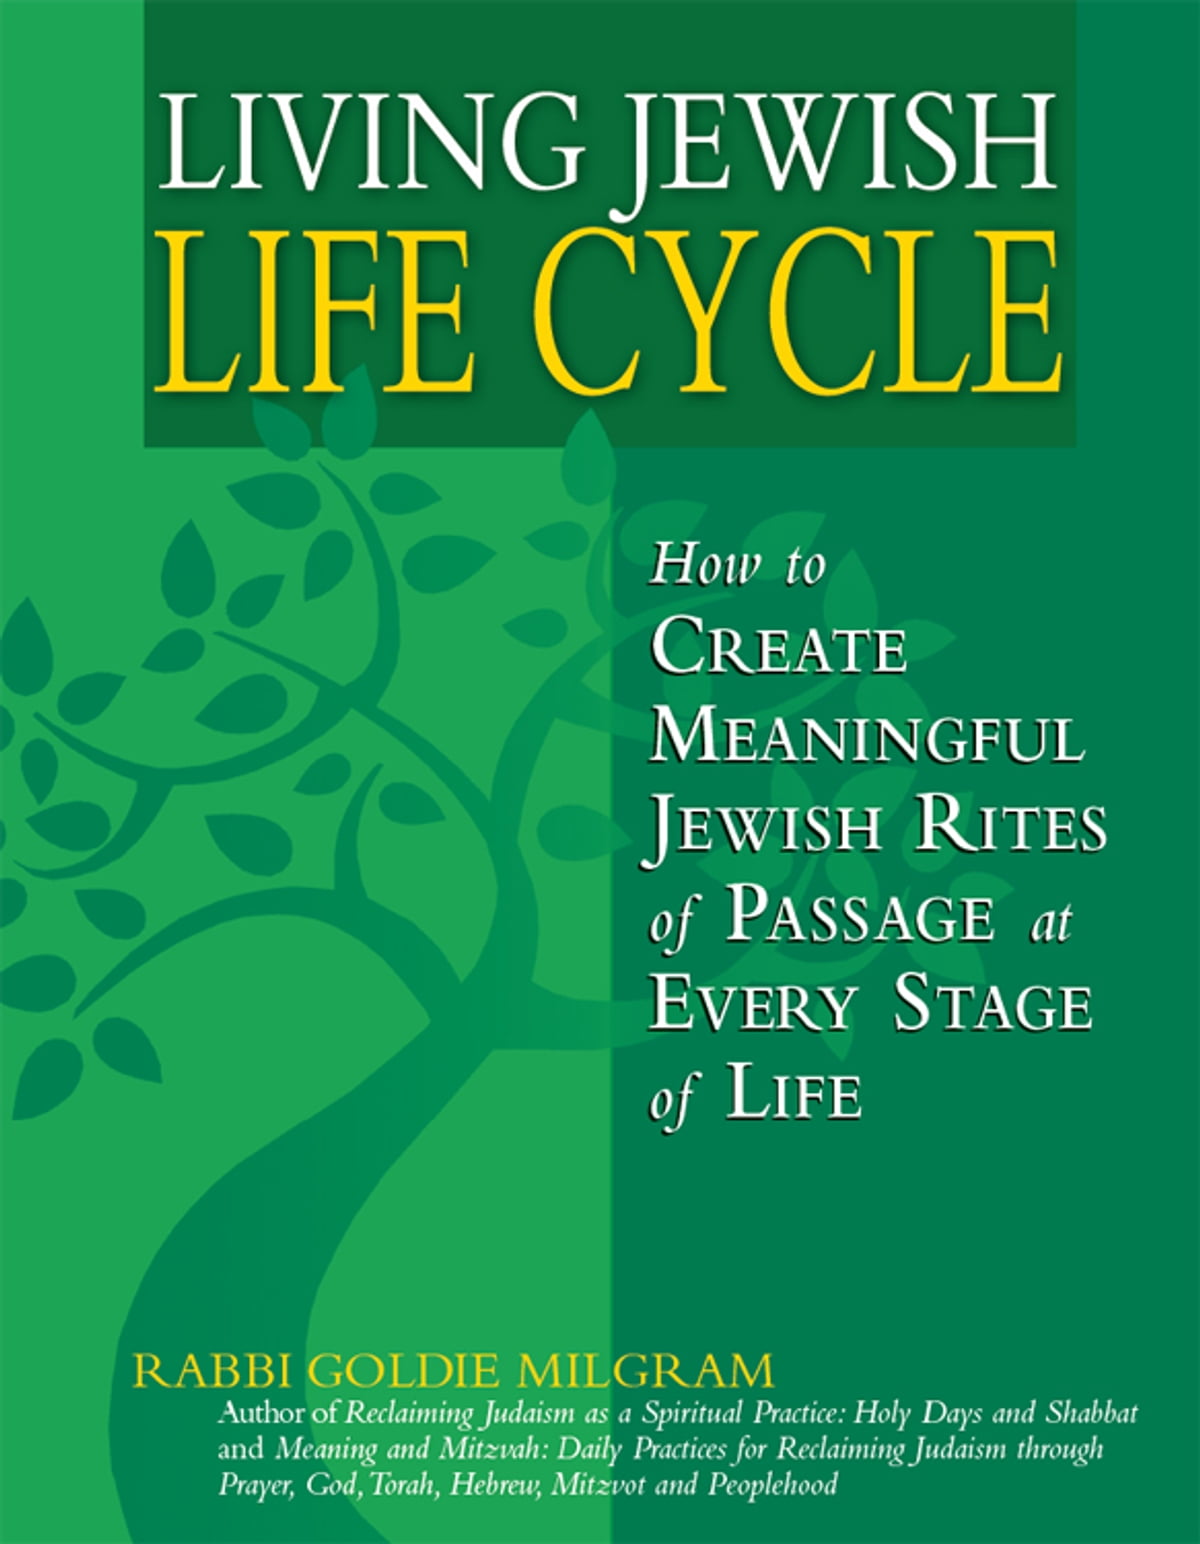 Living Jewish Life Cycle: How to Create Meaningful Jewish Rites of Passage  at Every Stage of Life ebook by Rabbi Goldie Milgram - Rakuten Kobo